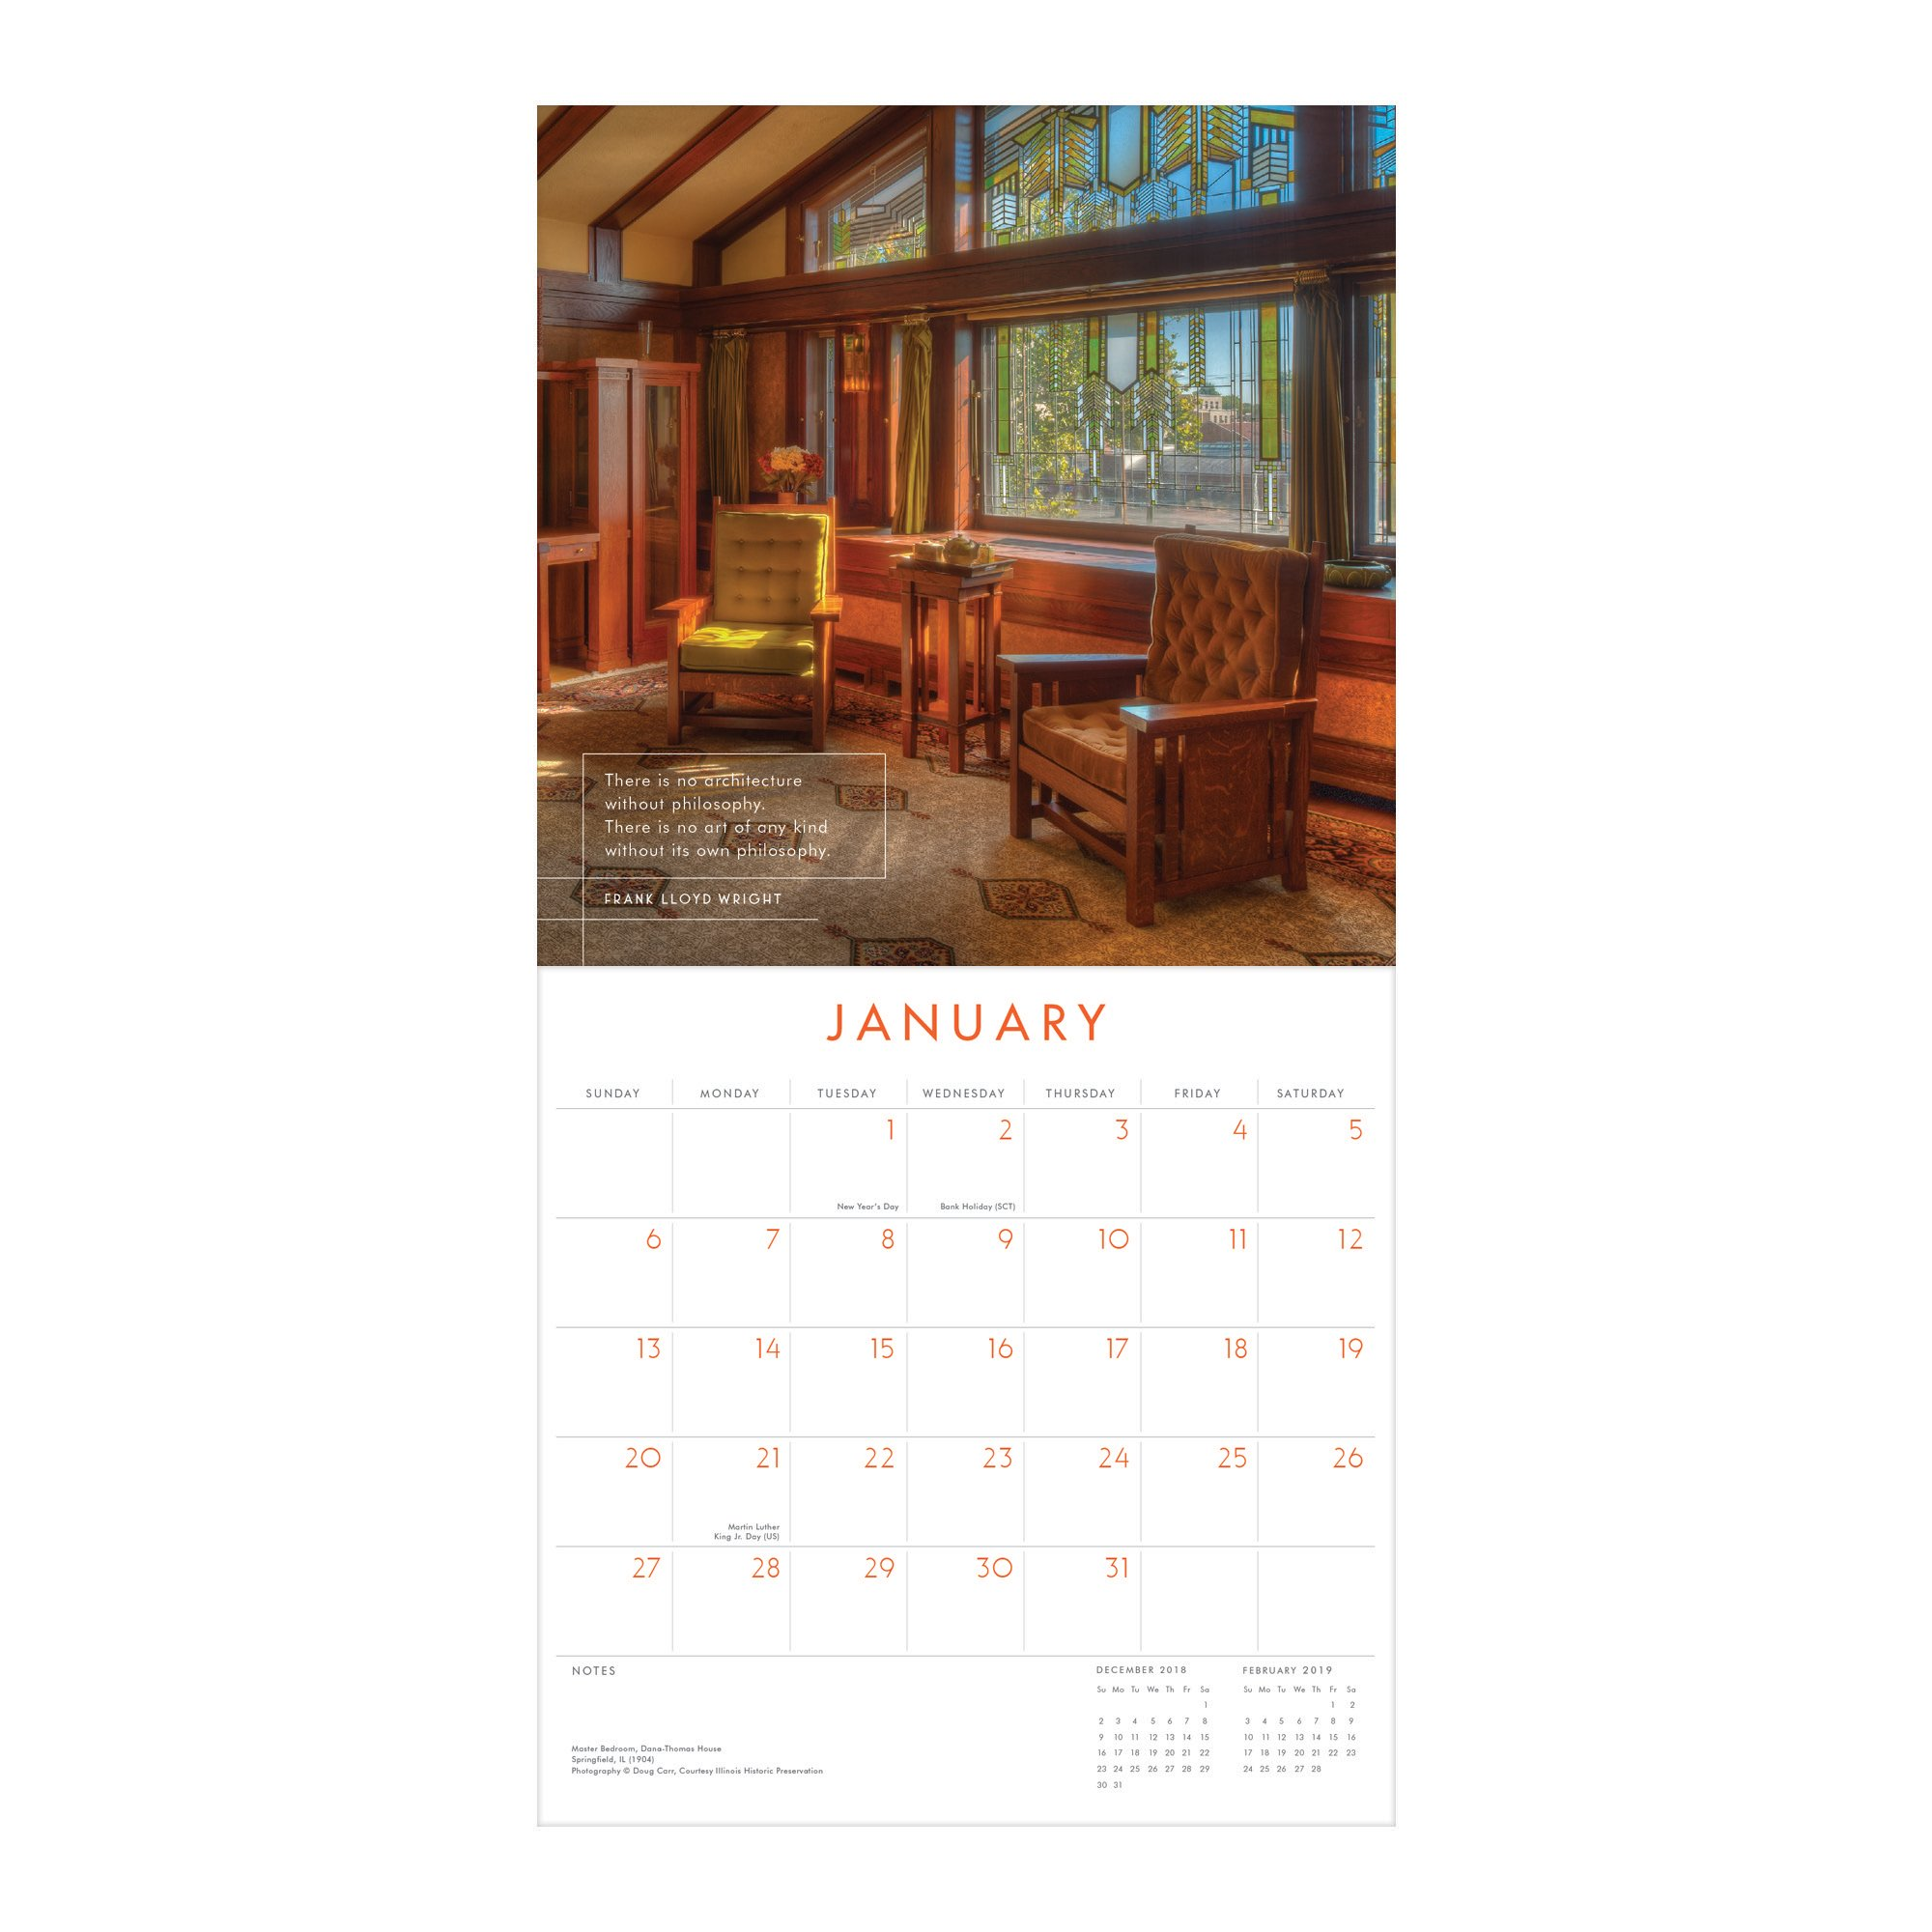 2019 Coloring Wall Calendar With Frank Lloyd Wright